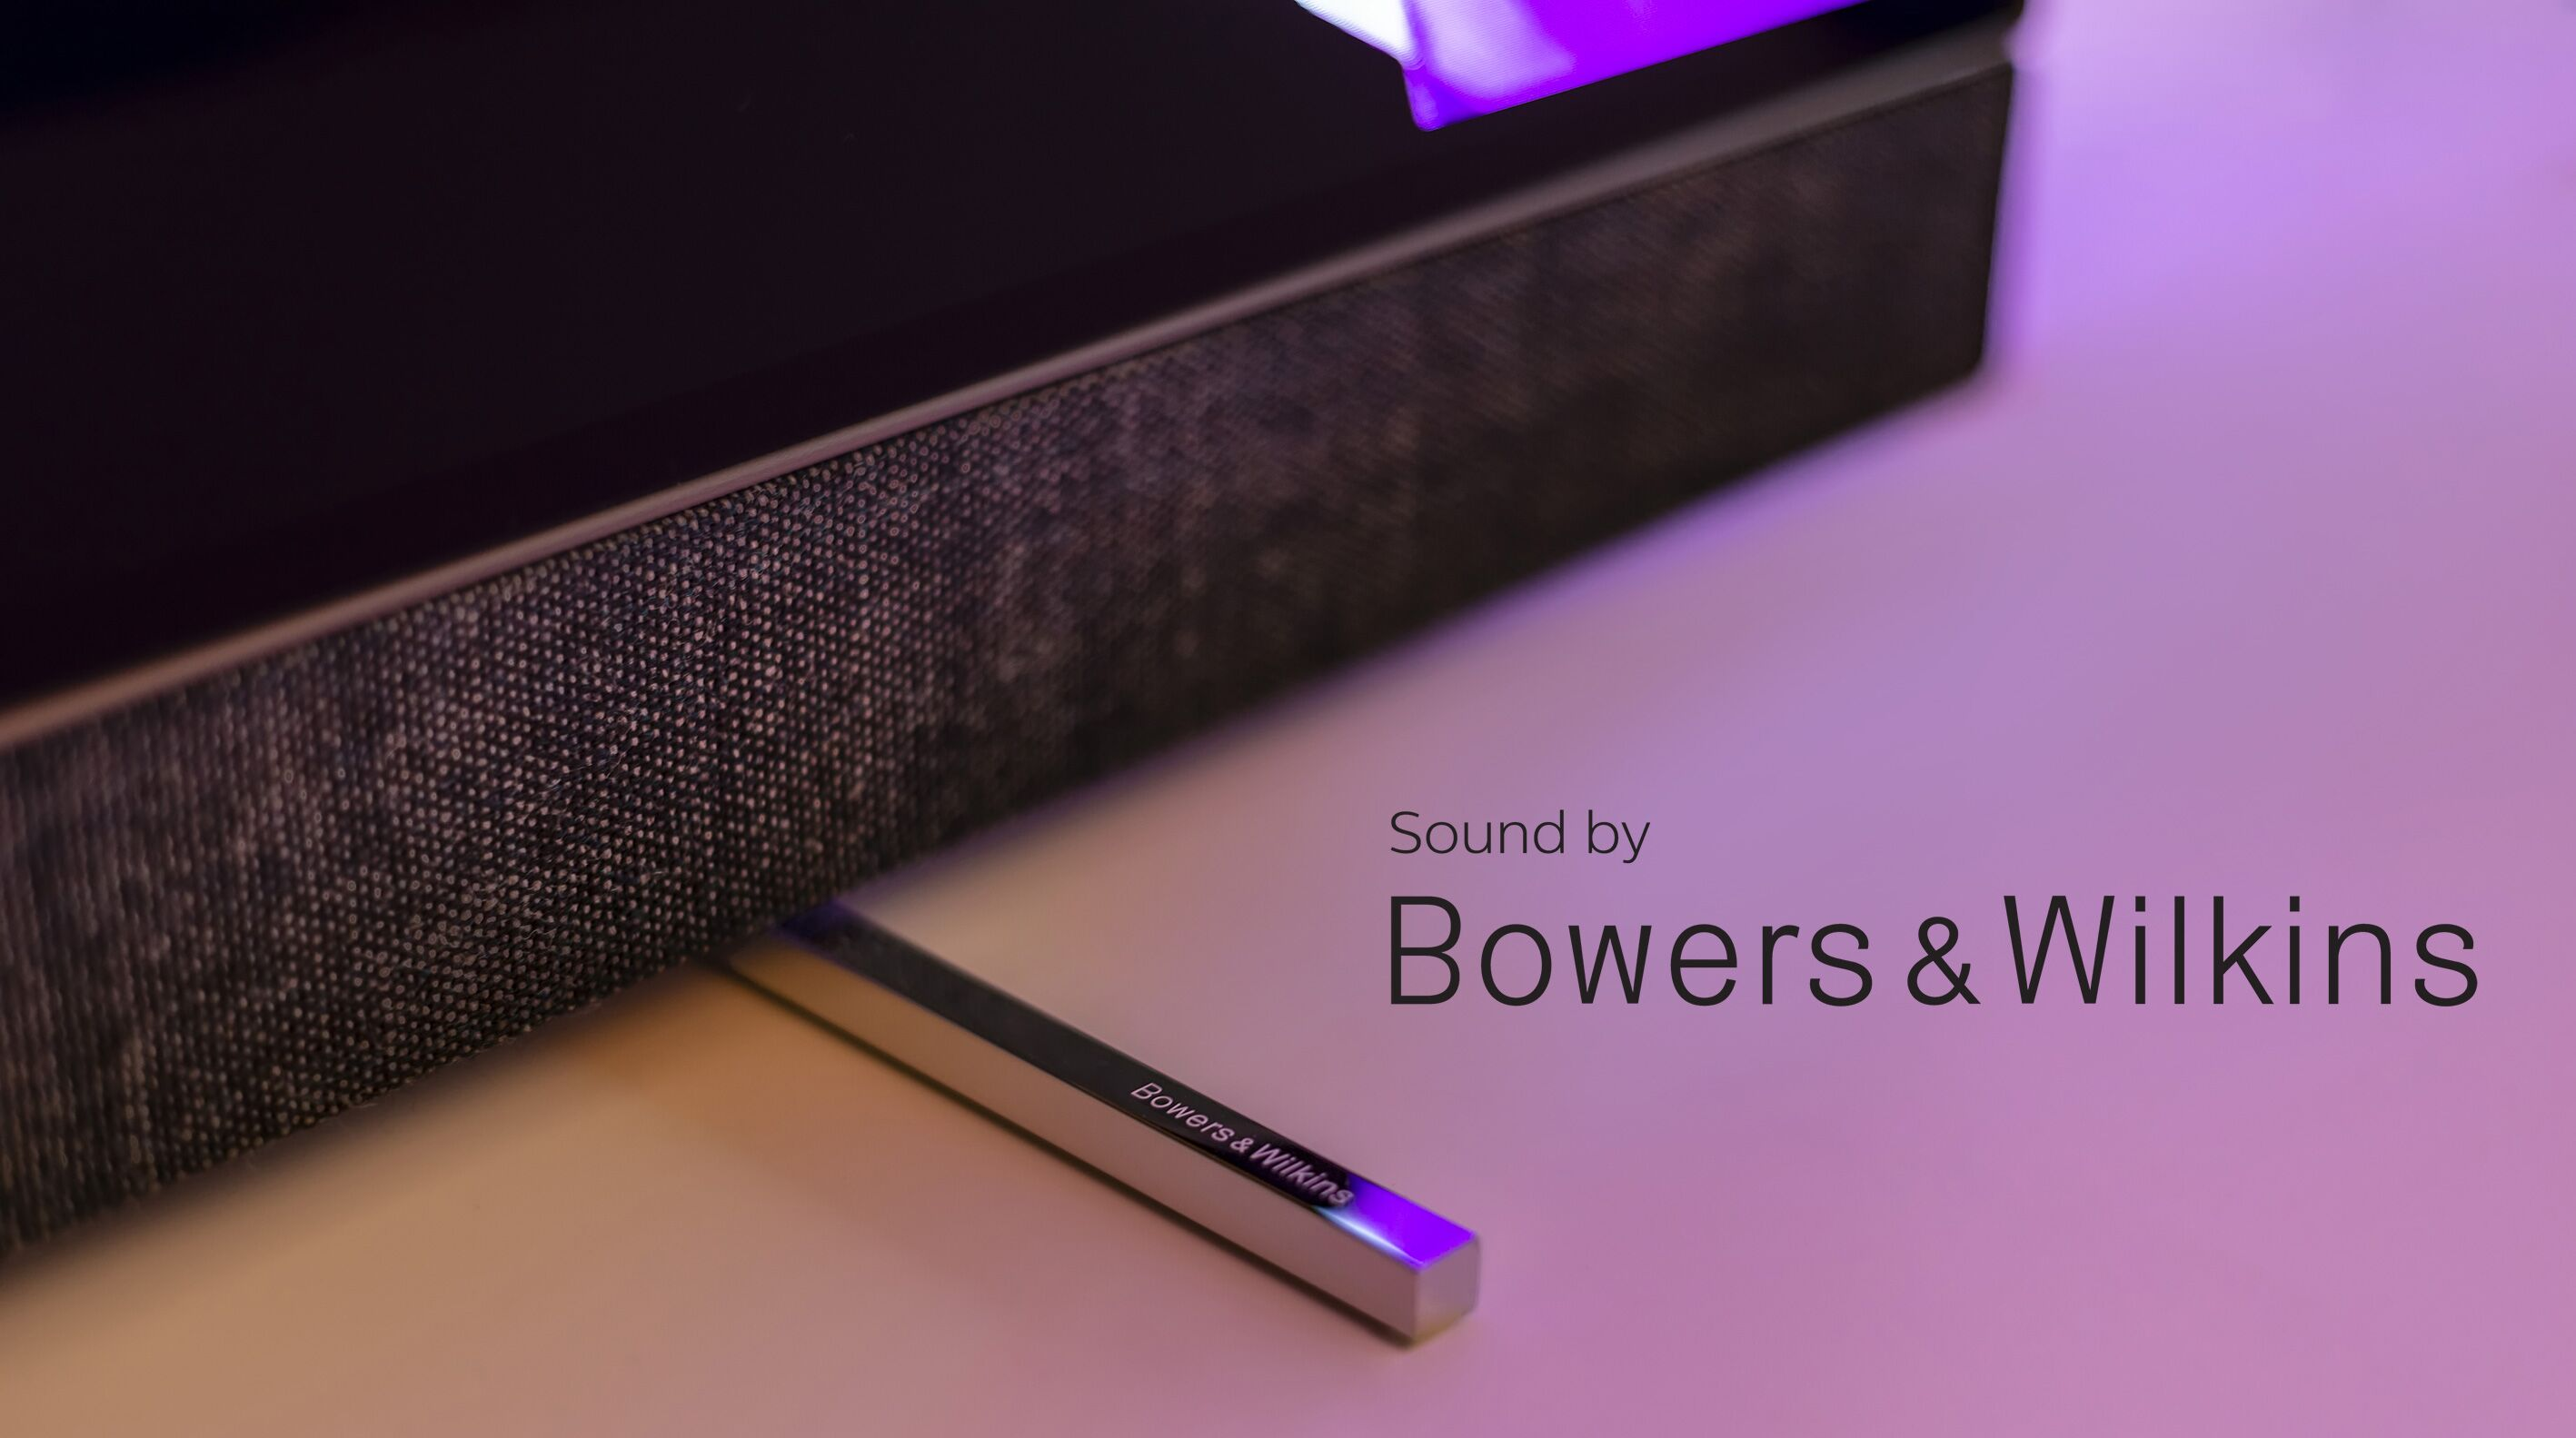 Philips OLED 903 Sound by Bowers & Wilkins